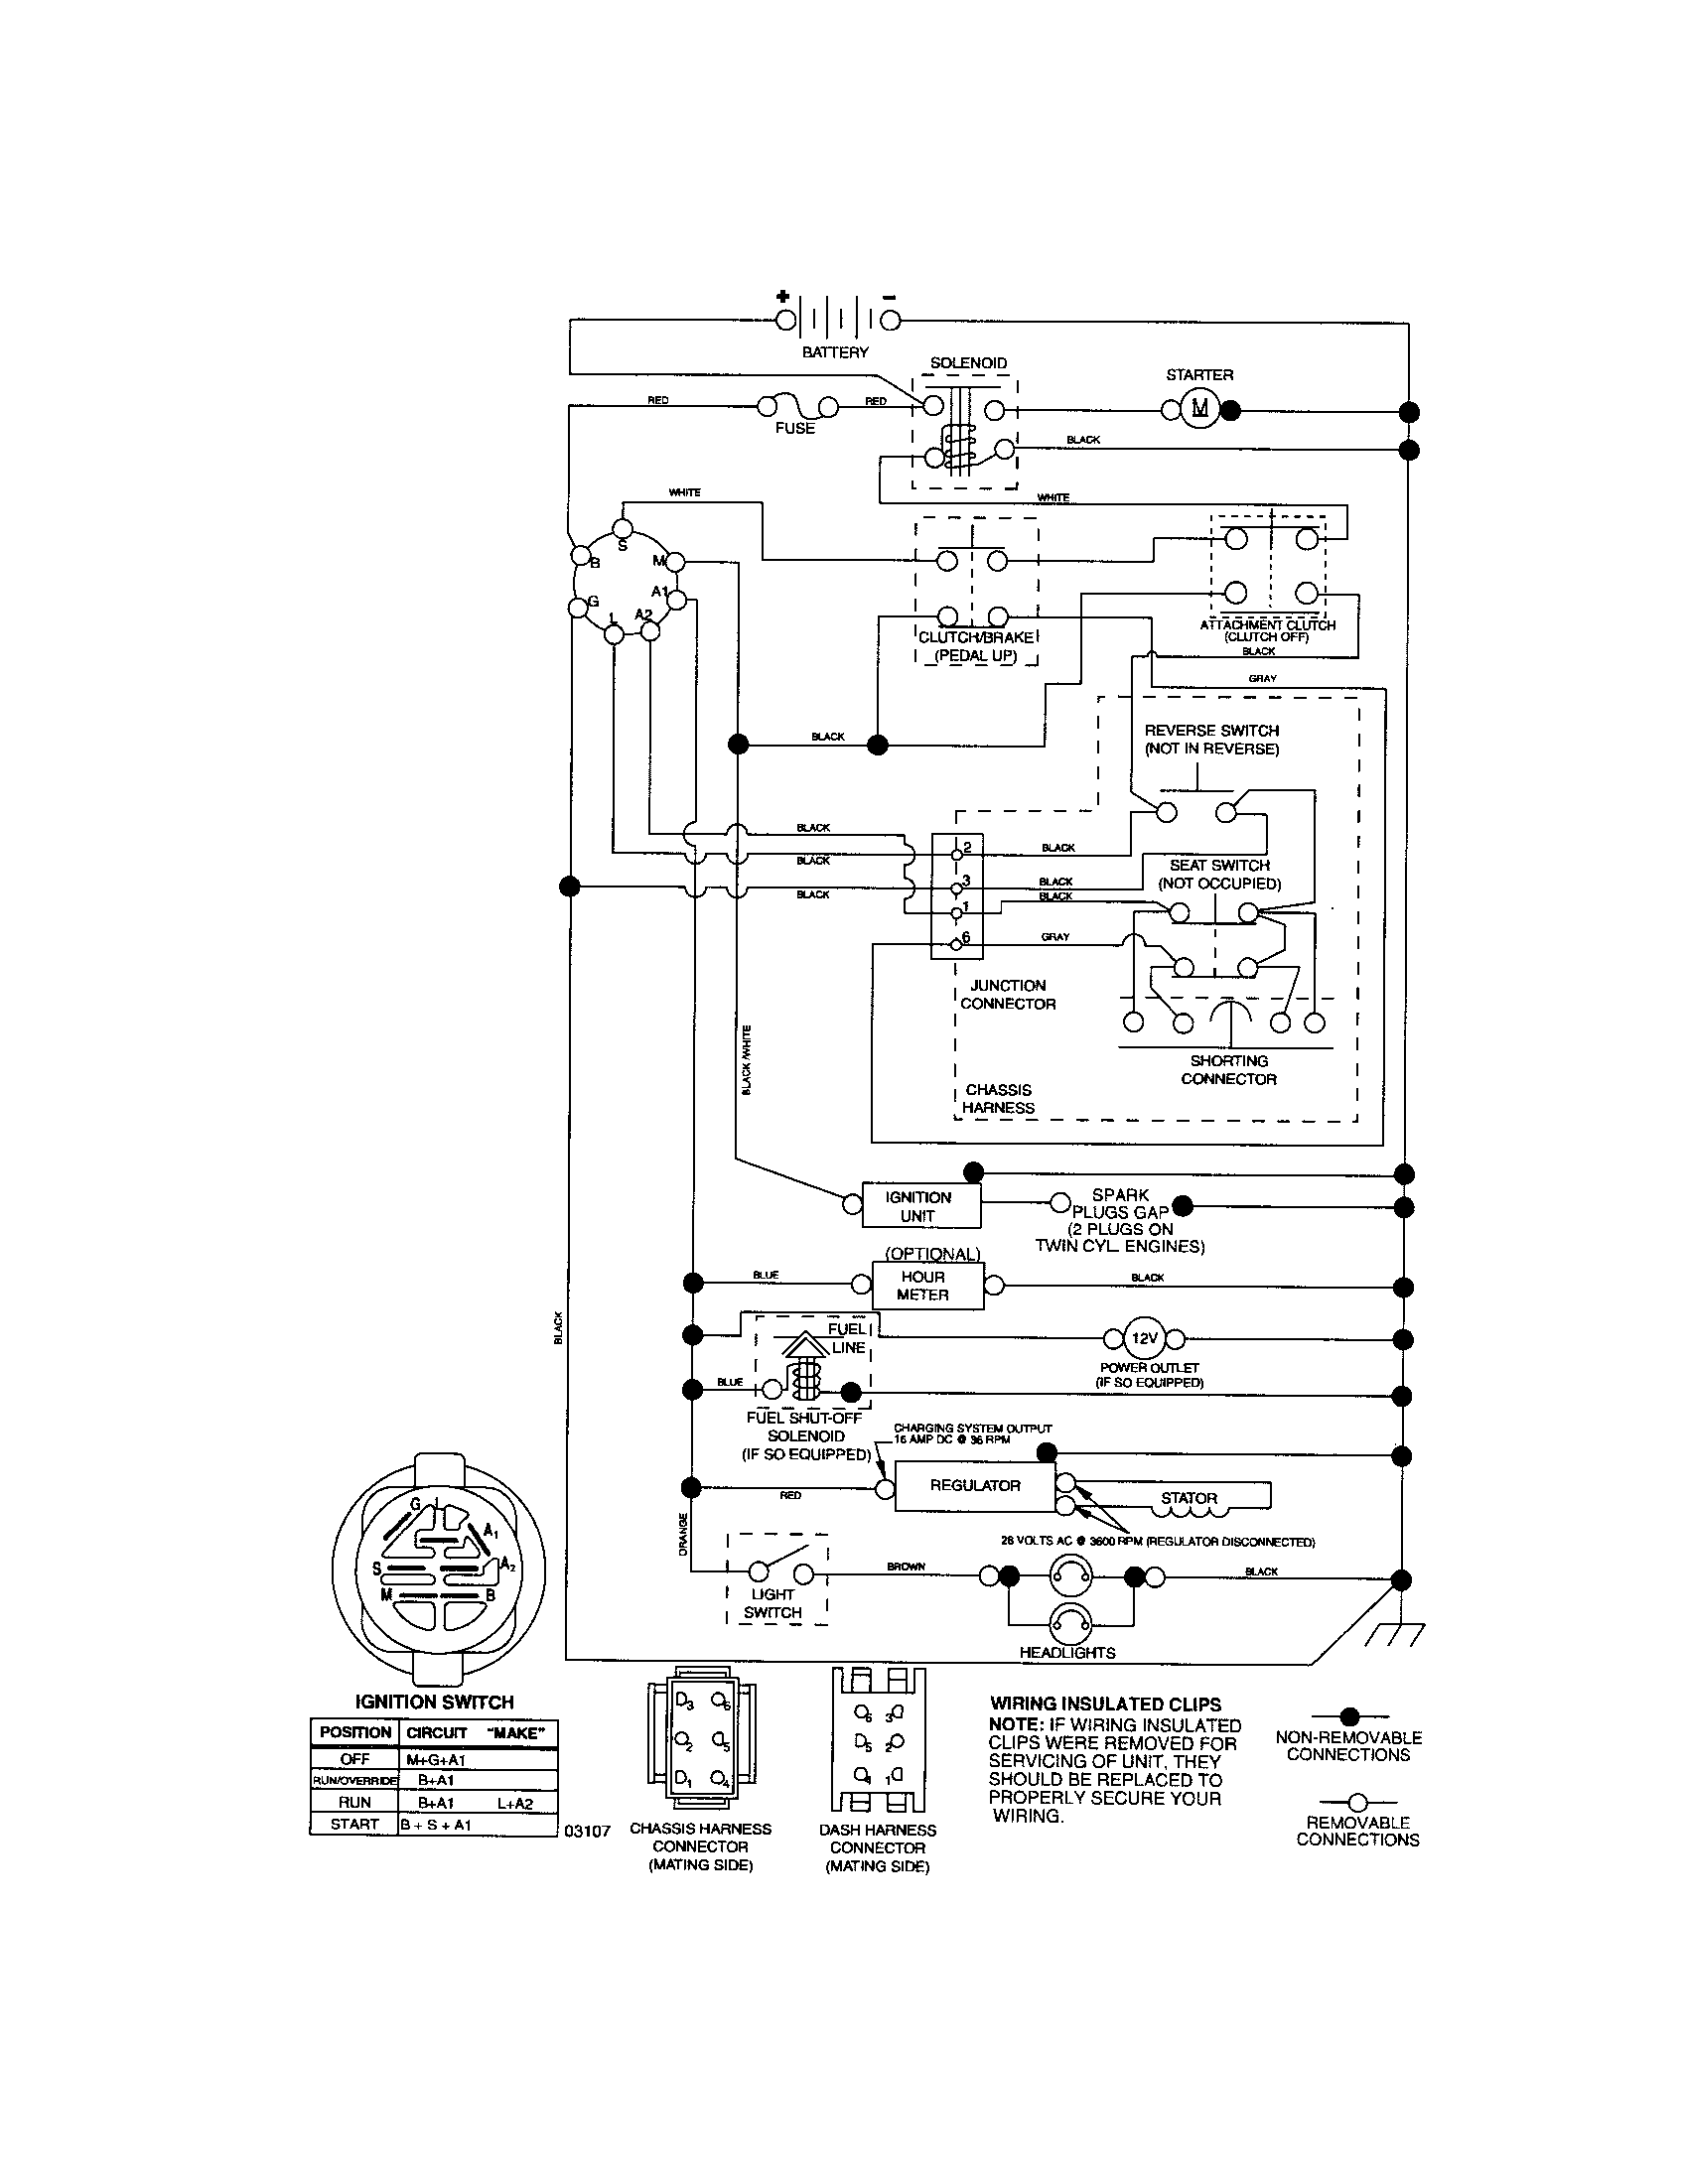 Craftsman Riding Mower Electrical Diagram Wiring Add 2 New On Side Doityourselfcom Community Forums Lawn I Need One For